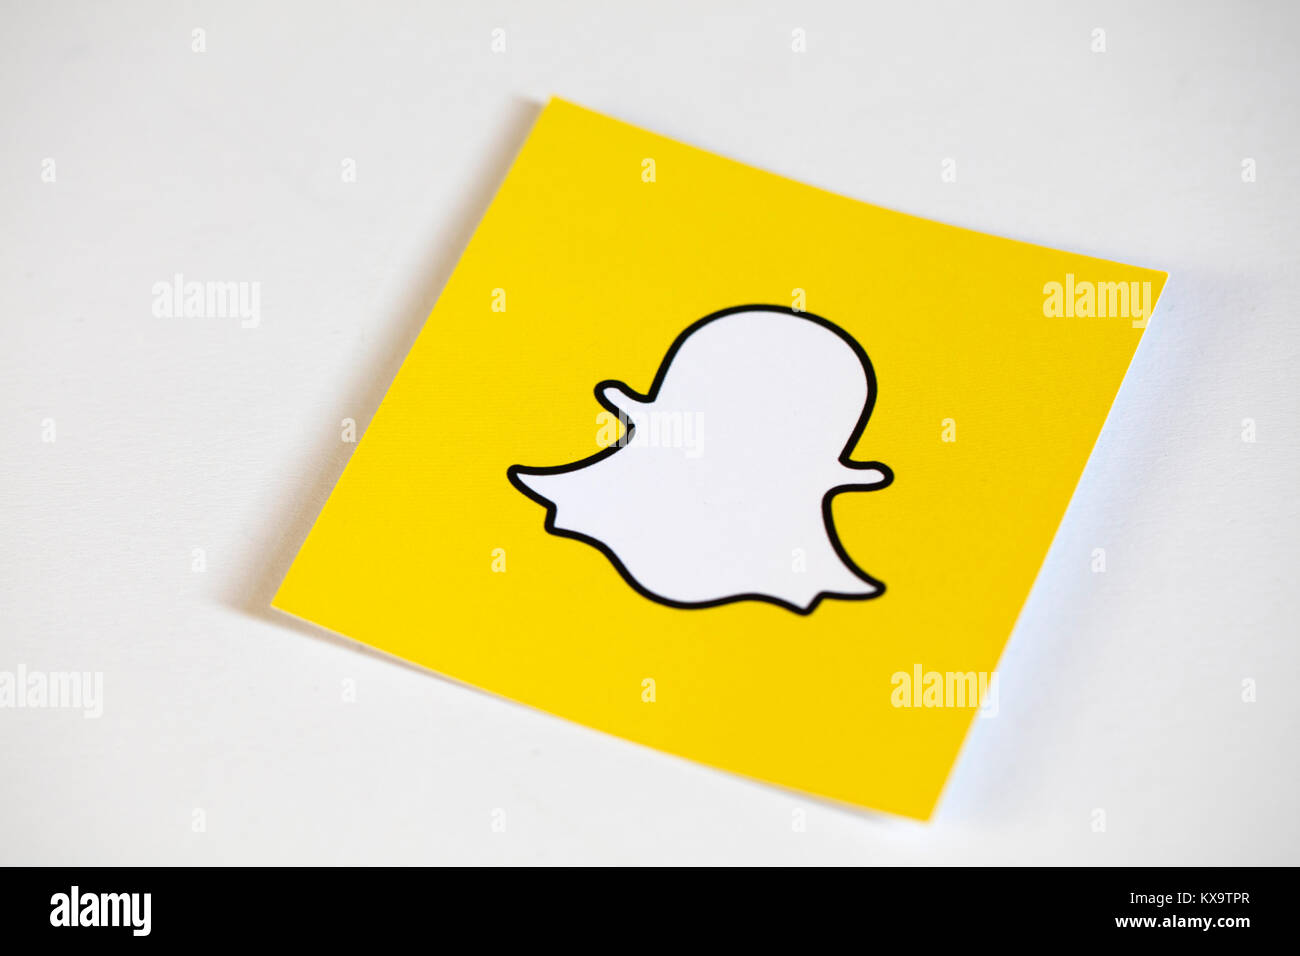 Snapchat Yellow Logo High Resolution Stock Photography And Images Alamy